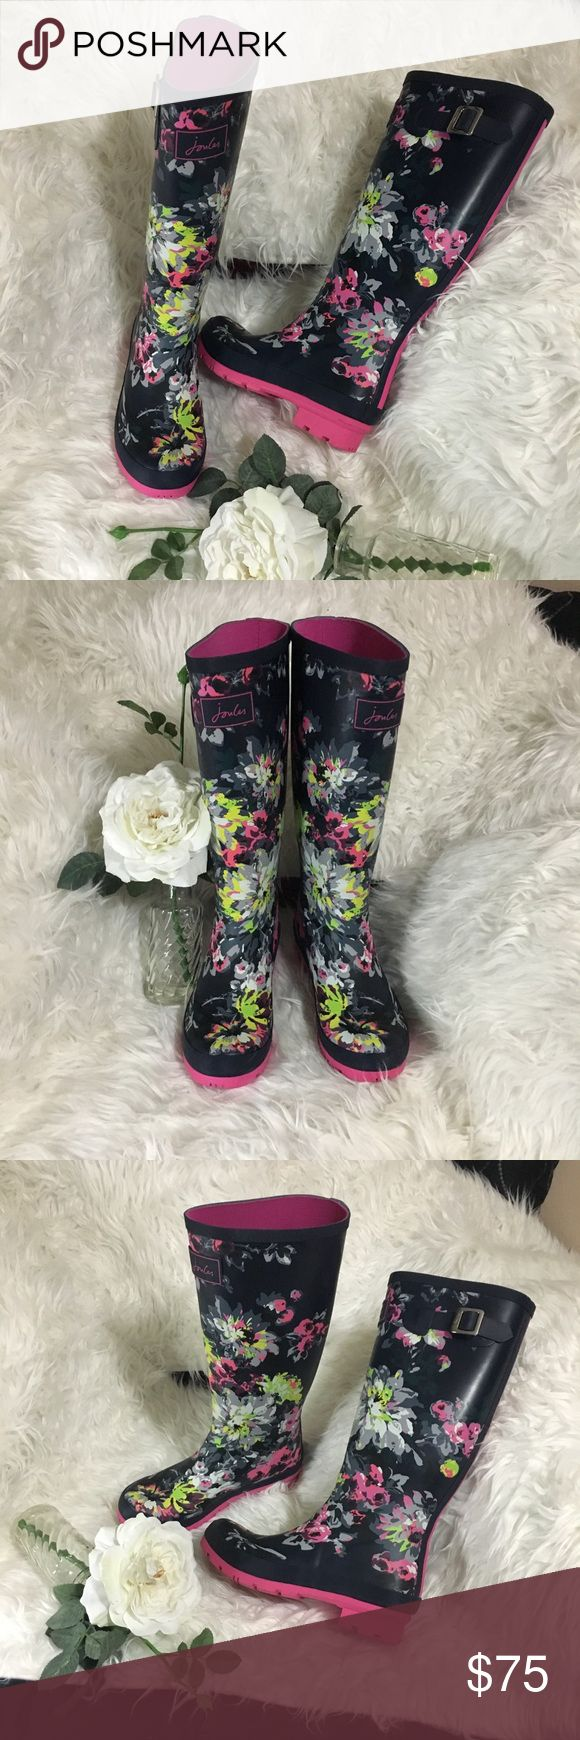 Brand new with stickers Joules Wellies Gorgeous navy and floral matte Wellies with a pink stripe to accent the back as well as the sole of the boot. Has stickers but not tags these are from Nordstrom and has the original Joules inside stickers that show they are UK 5 so they convert that to US 7. Wellies are meant to run big as you wear with thick socks!!! Side of Rain Boots have a silver buckle to tighten or loosen to help with desired calf fit. Gorgeous unique print! This screams Pinterest…